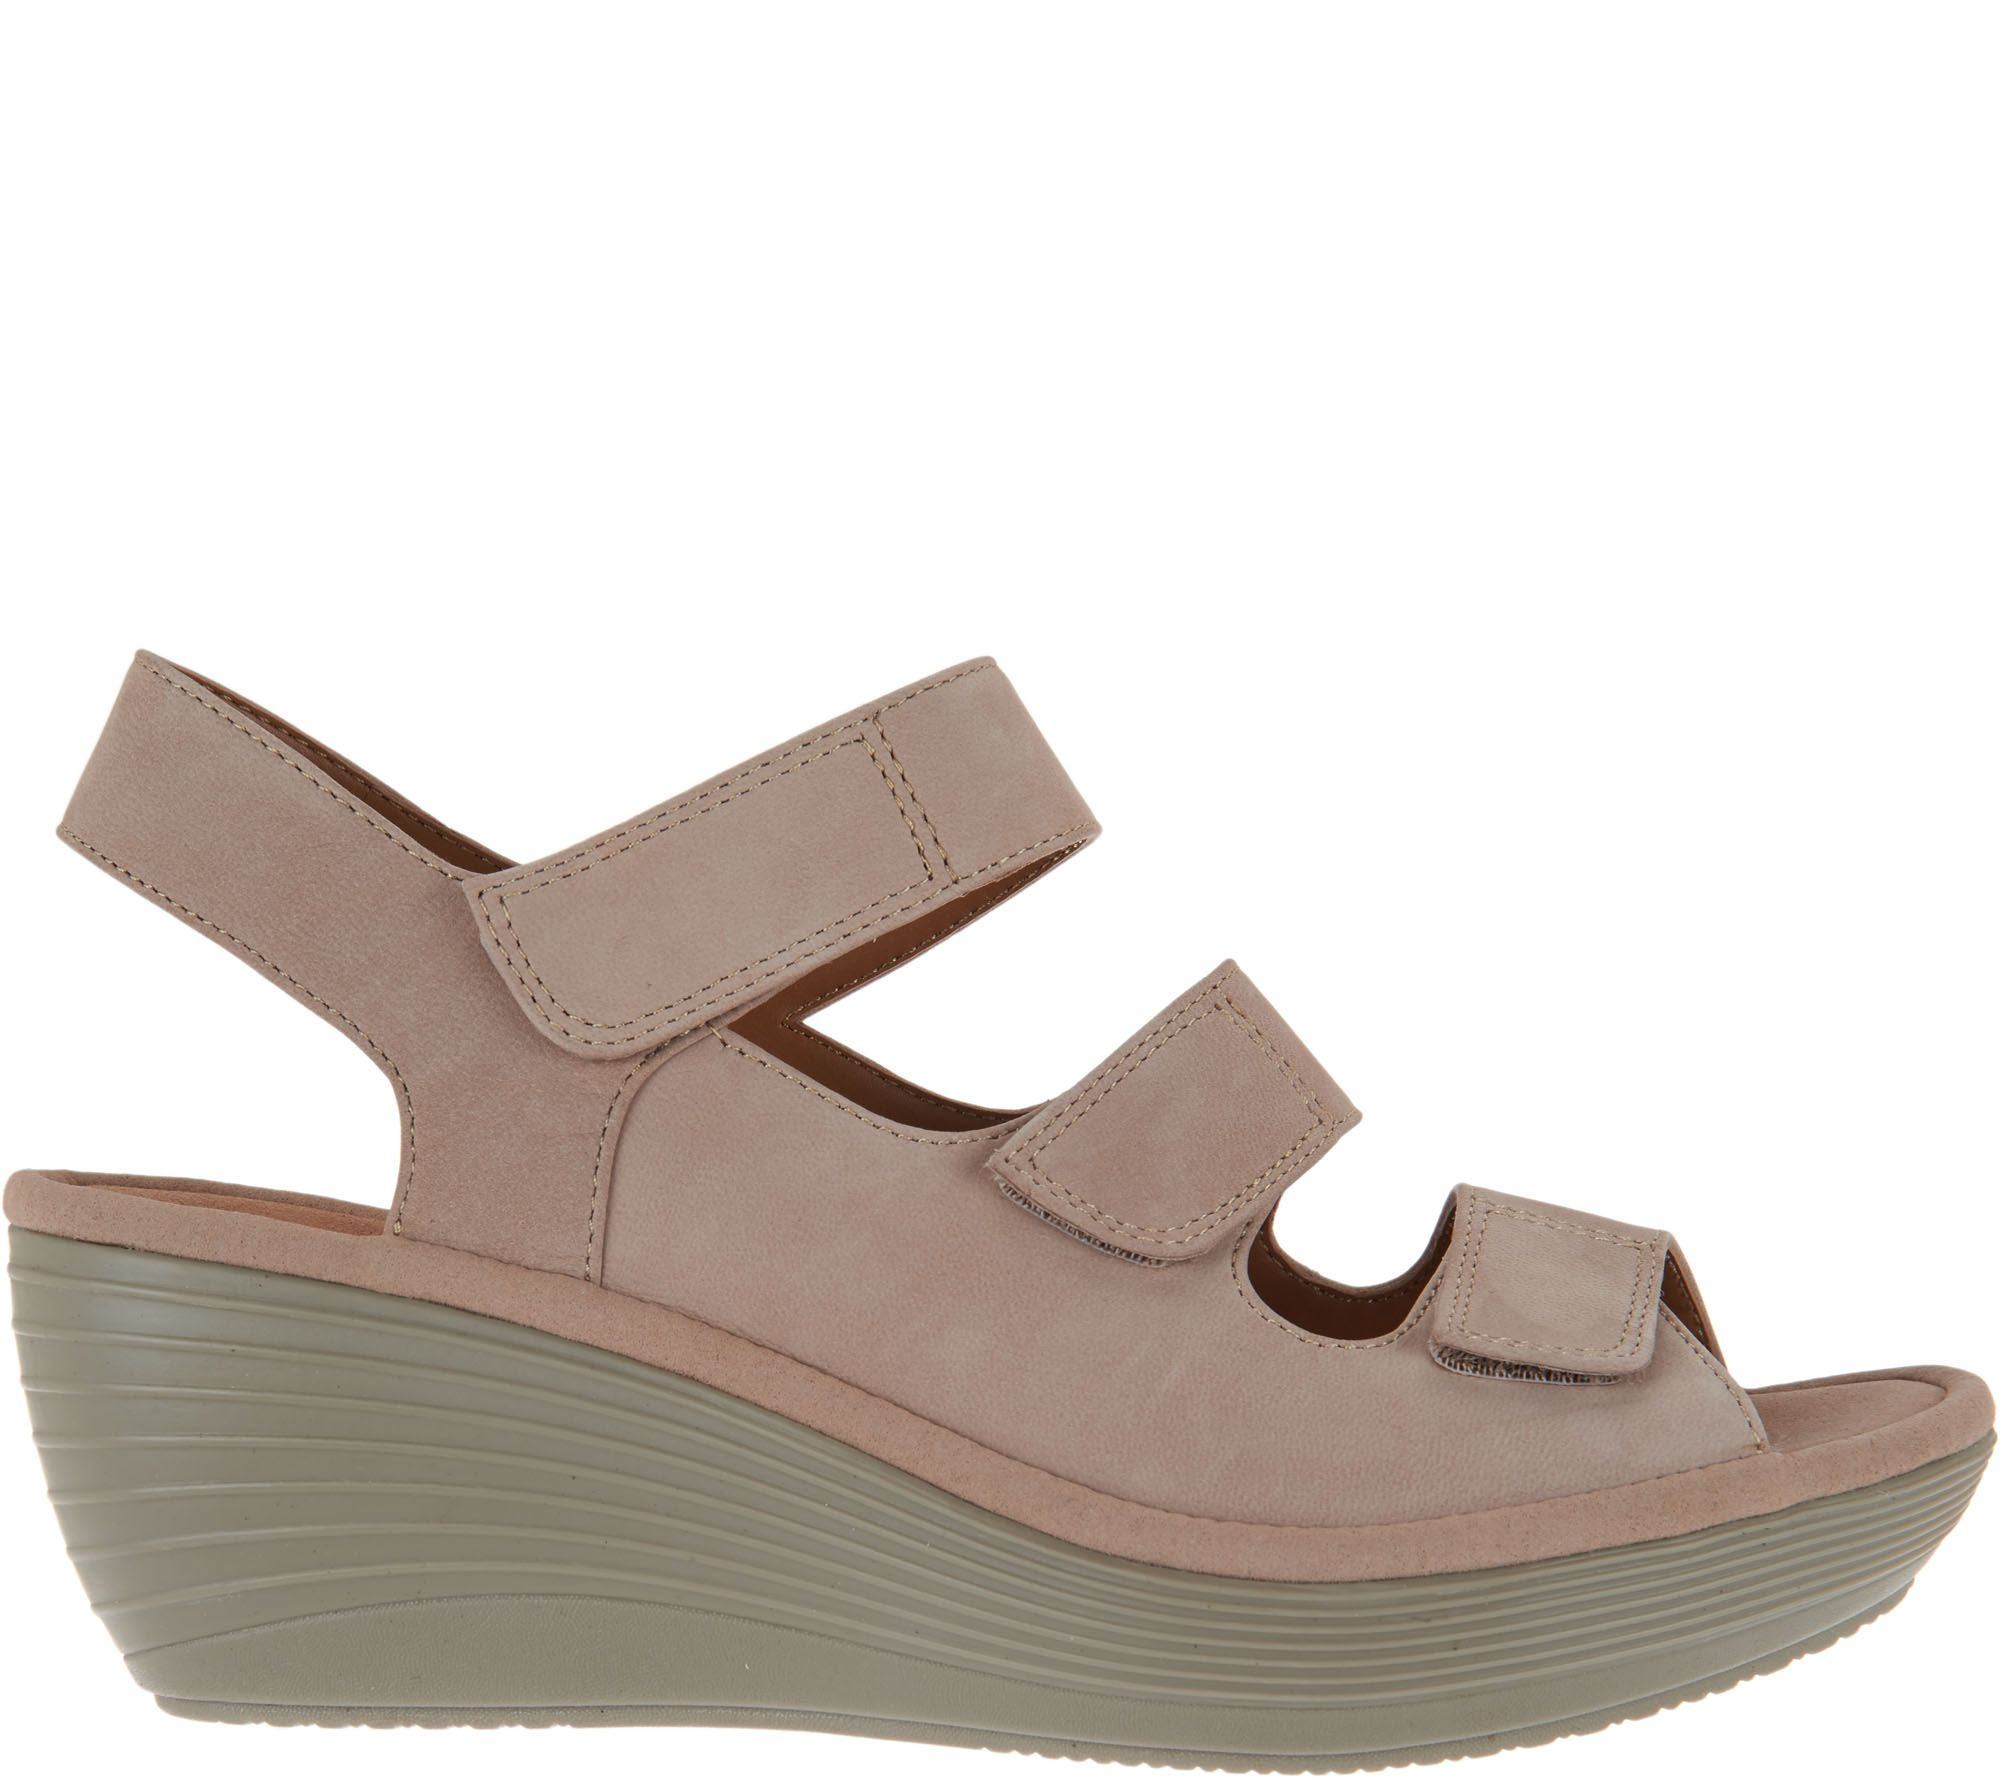 2654af23e881 Clarks Nubuck Triple Strap Wedge Sandals - Reedly Juno - Page 1 — QVC.com